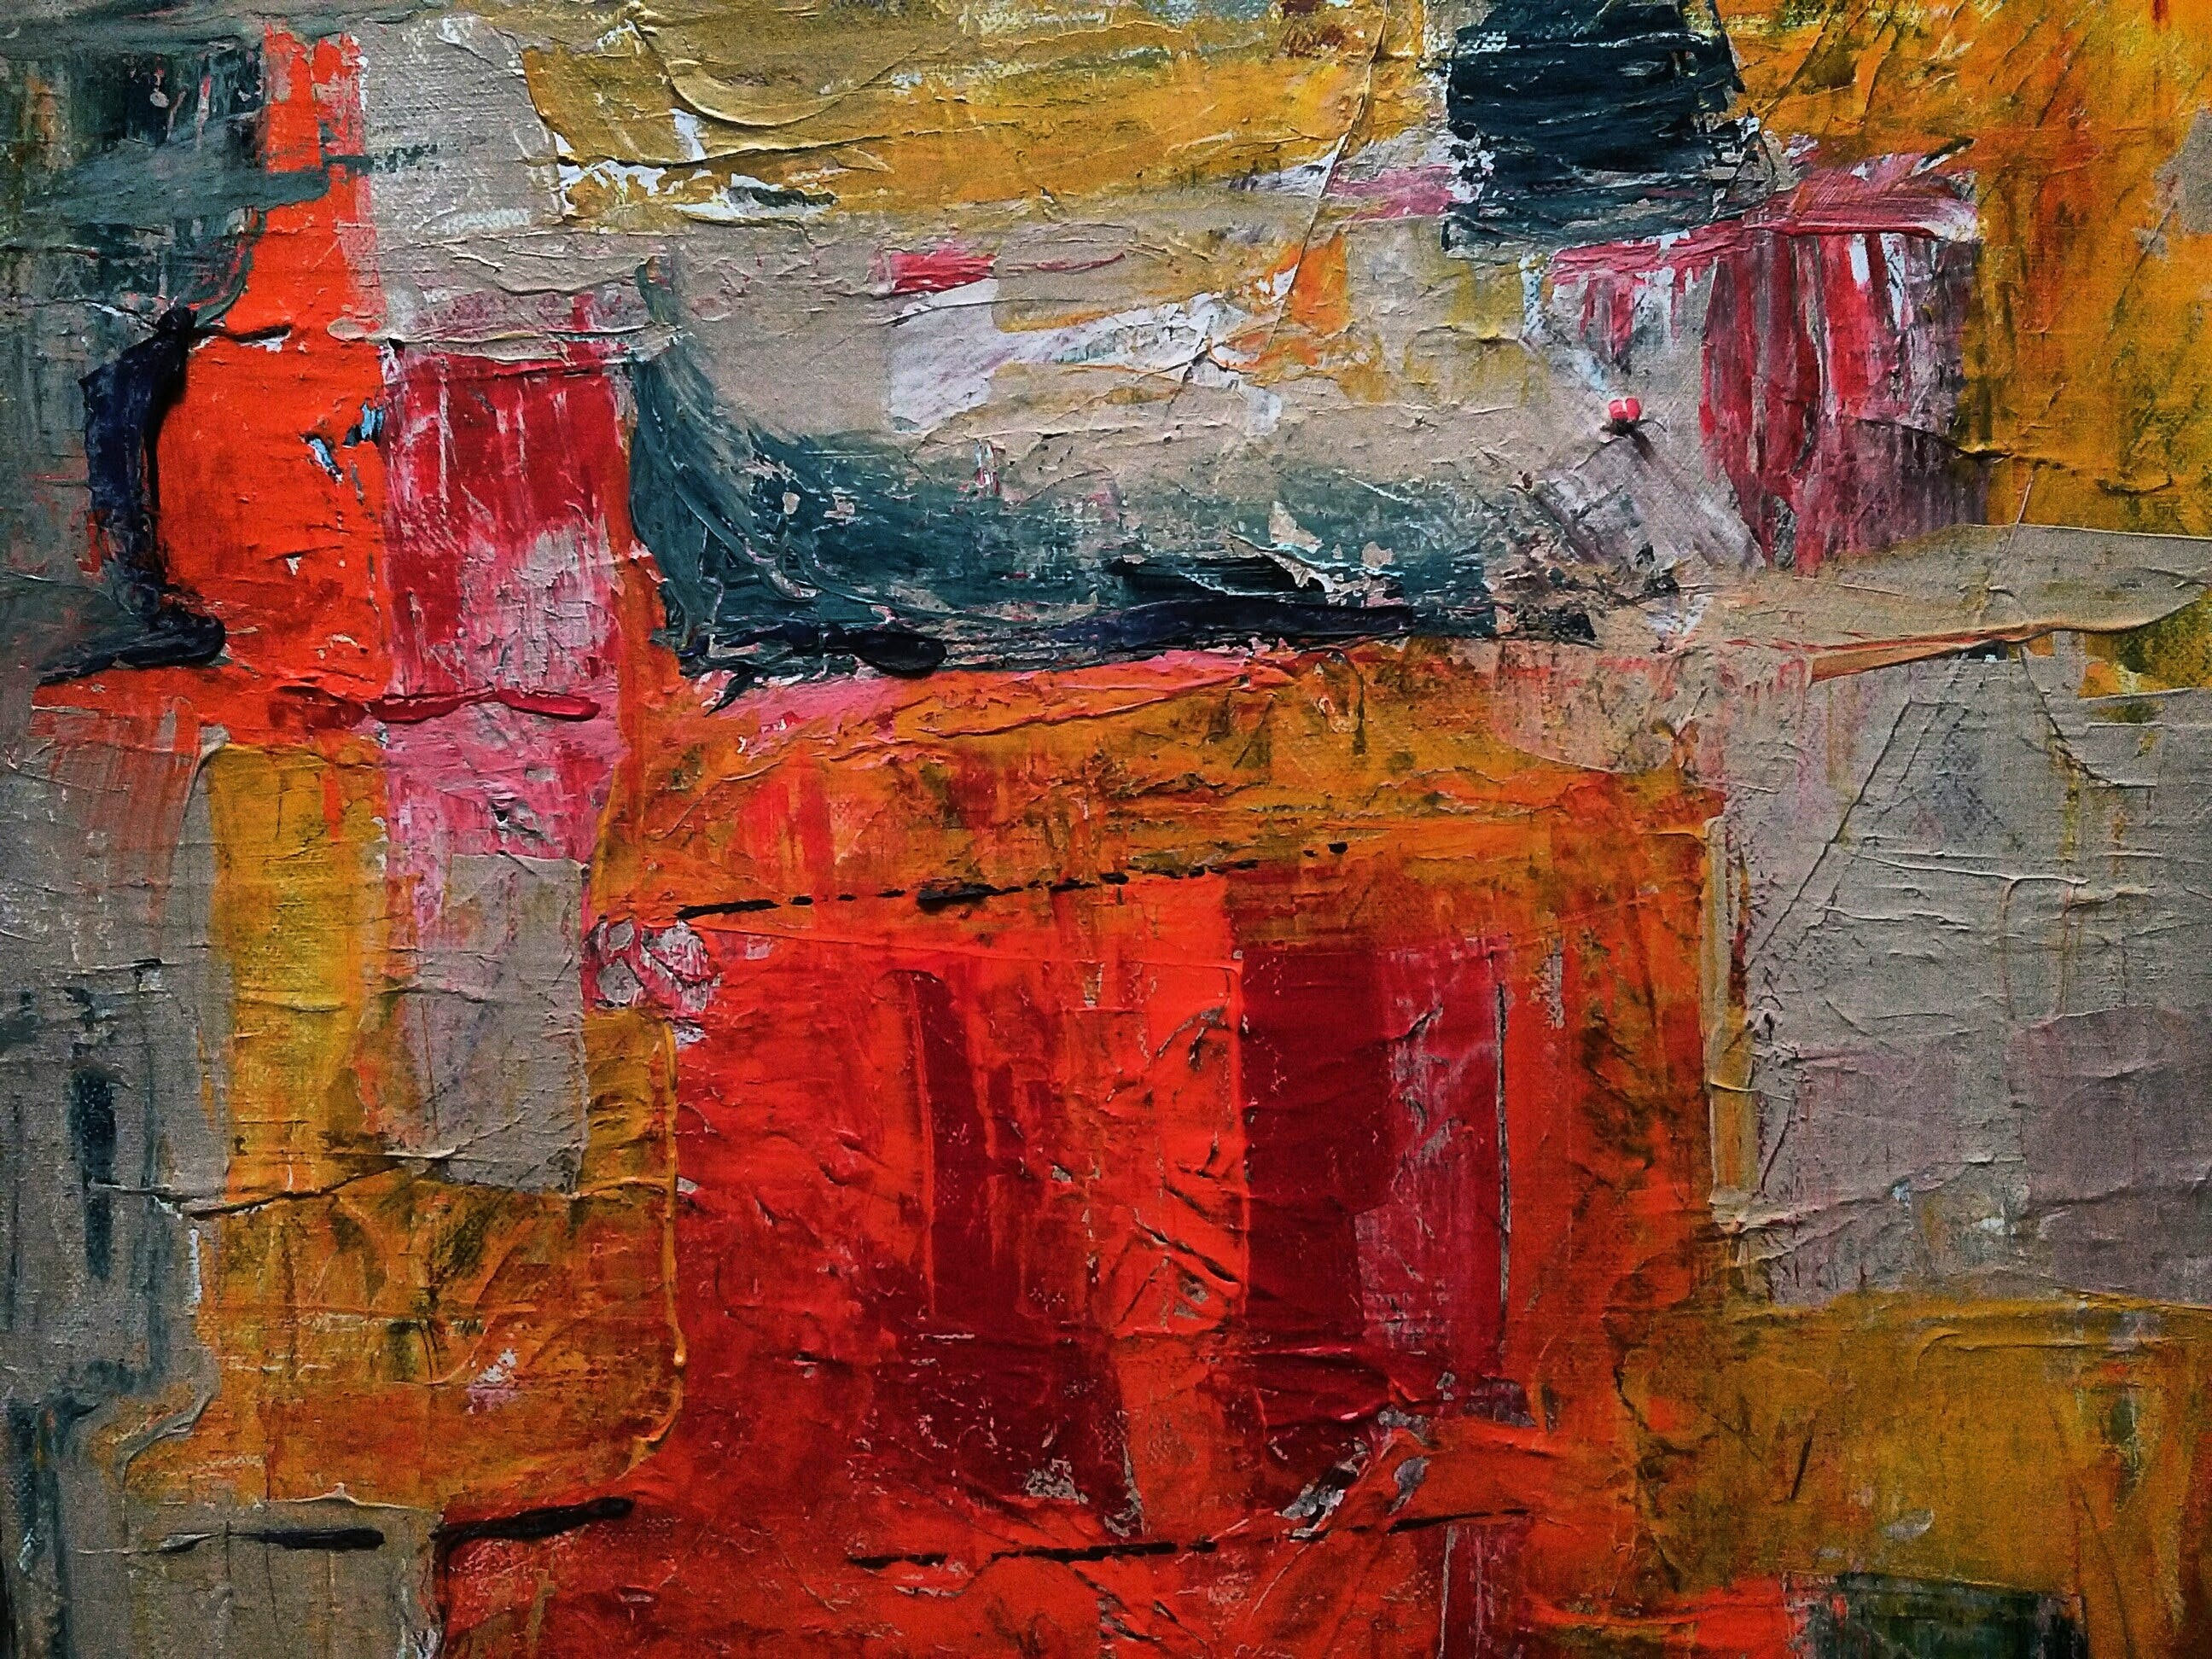 Red, Gray, and Yellow Abstract Painting